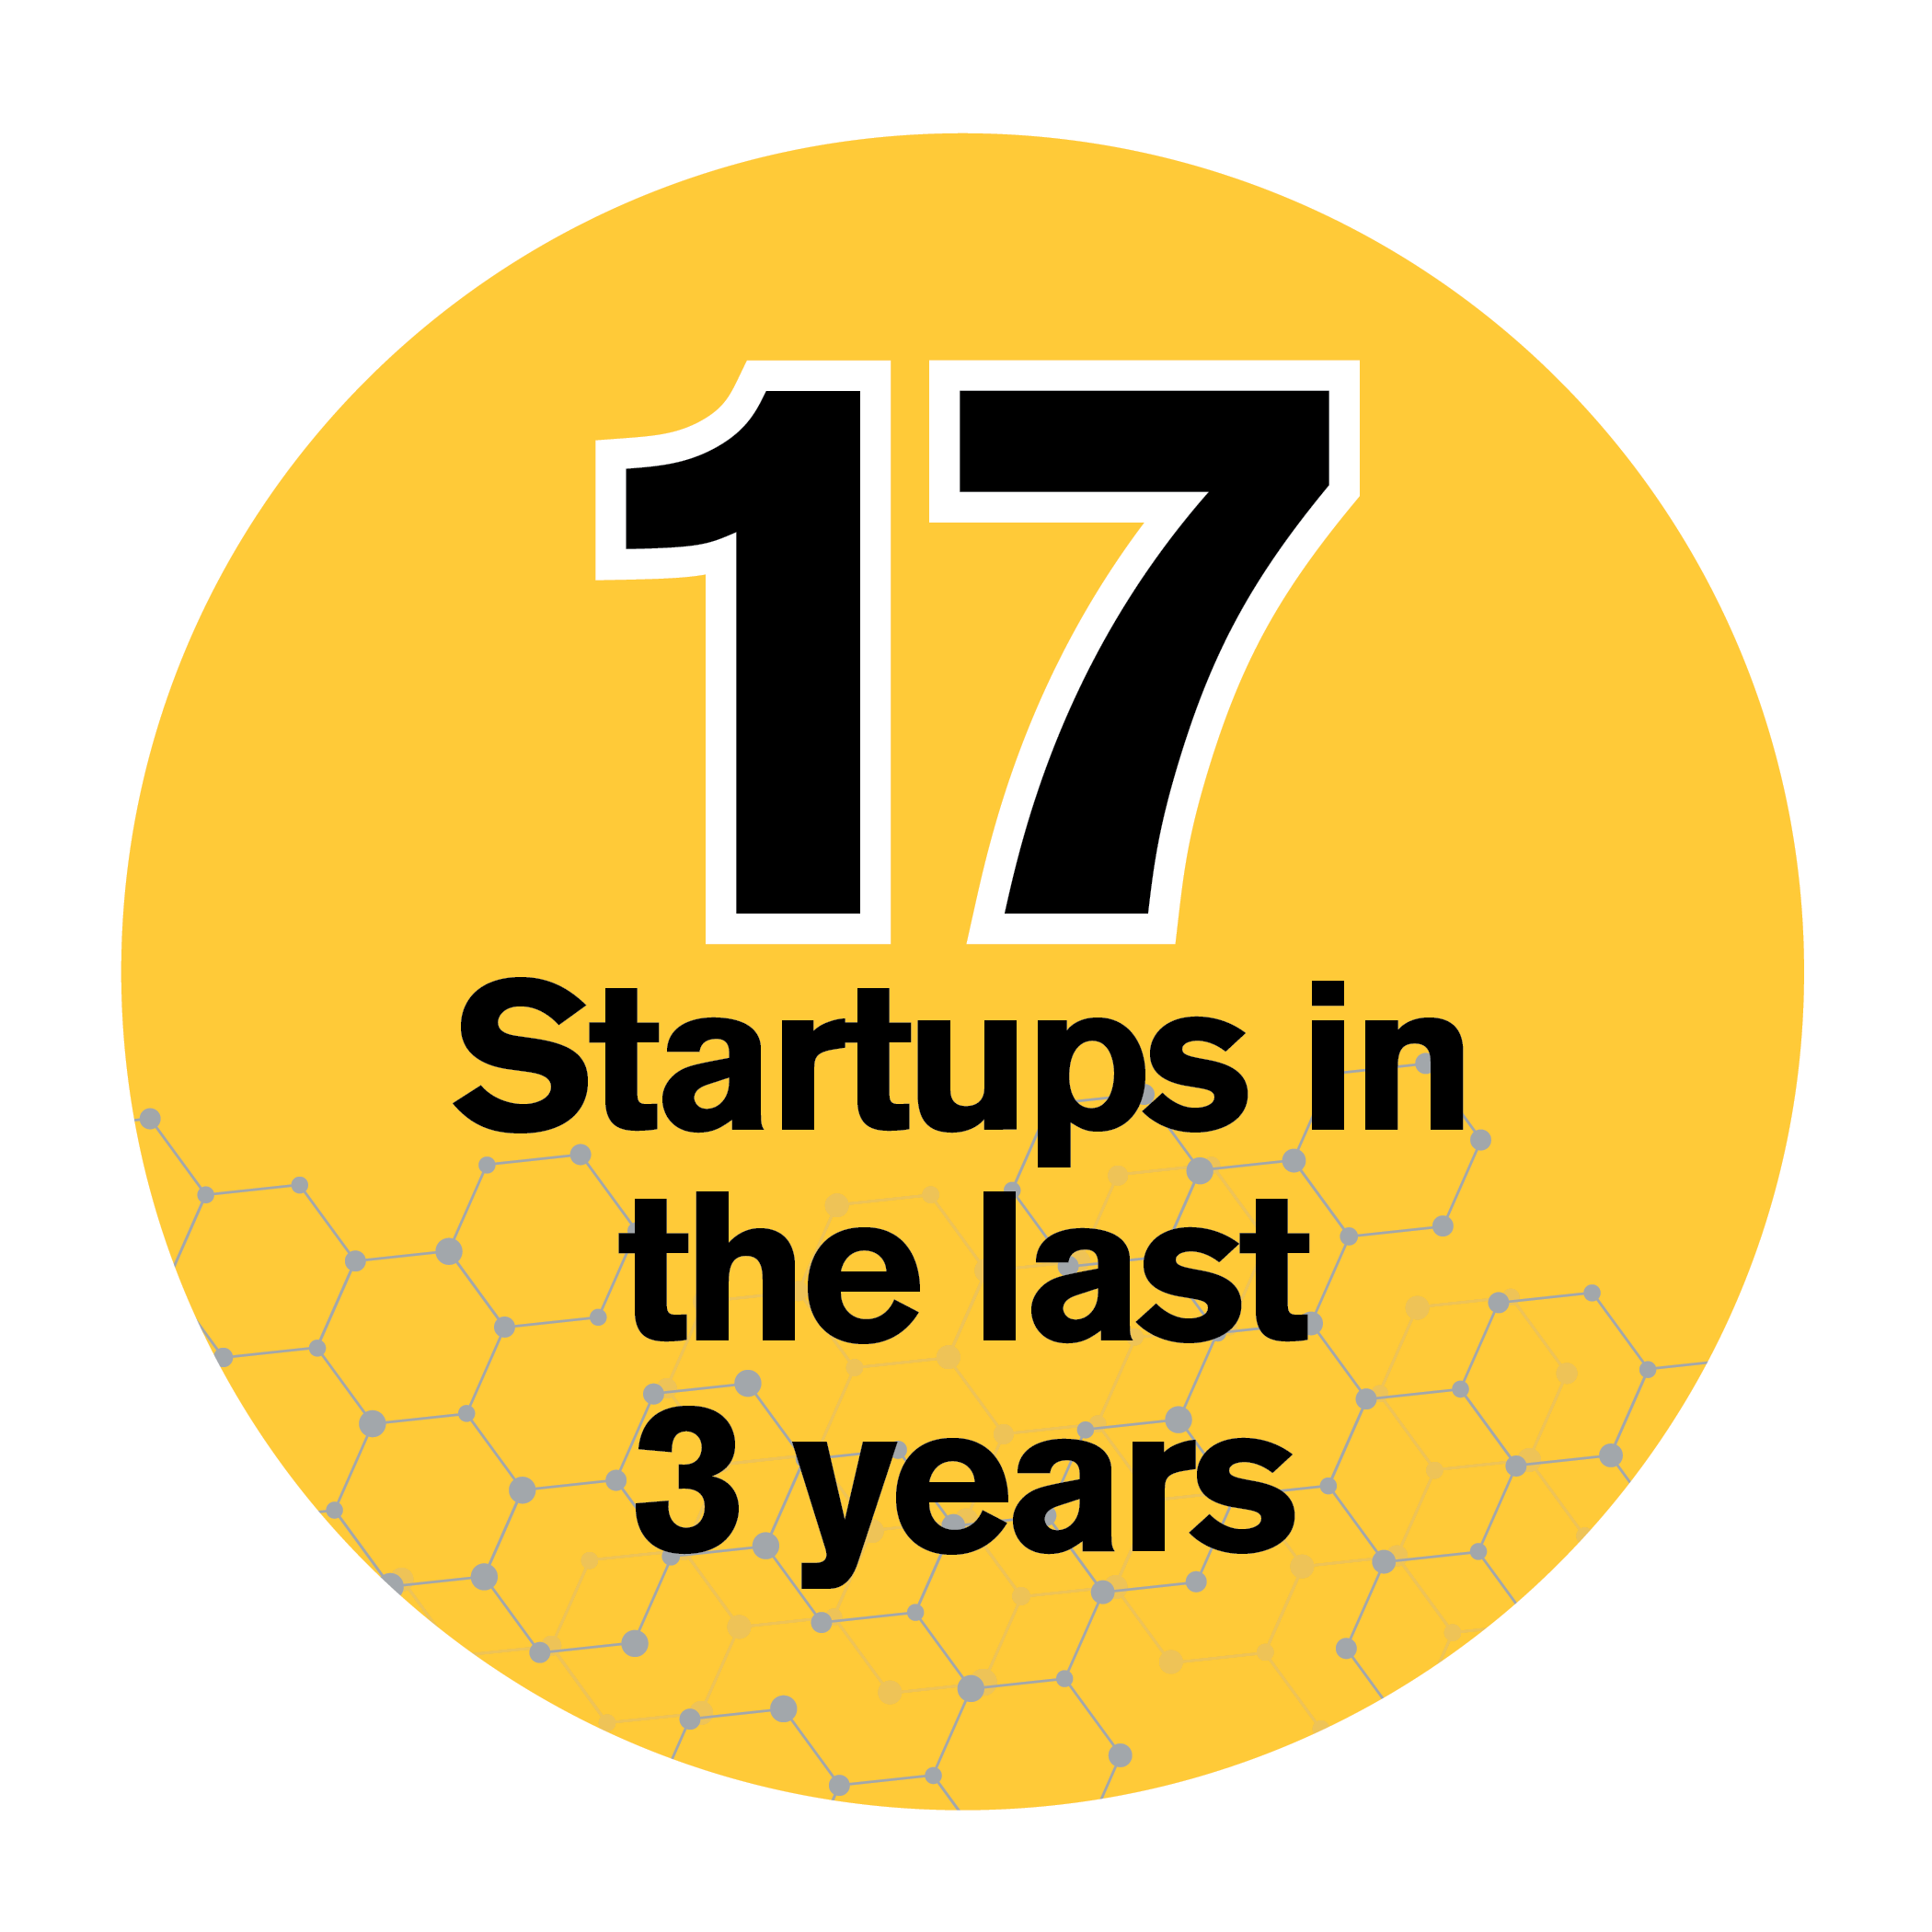 17 Startups in the last 3 years